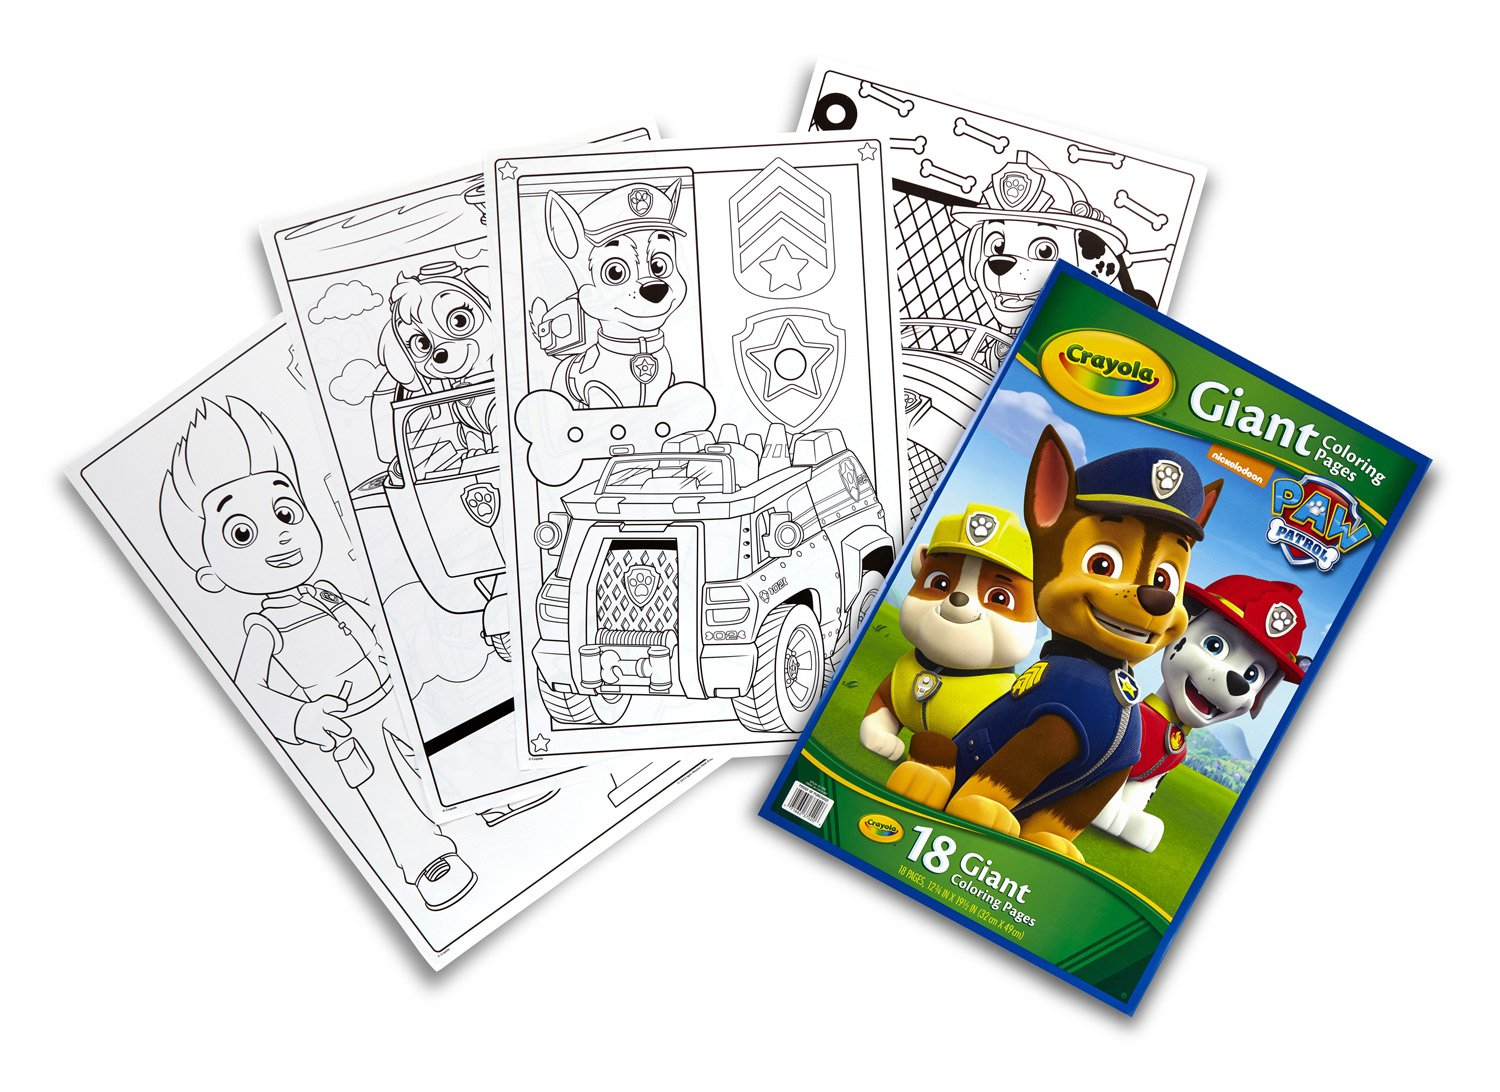 Amazon.com: Crayola Paw Patrol Giant Coloring Pages: Toys & Games